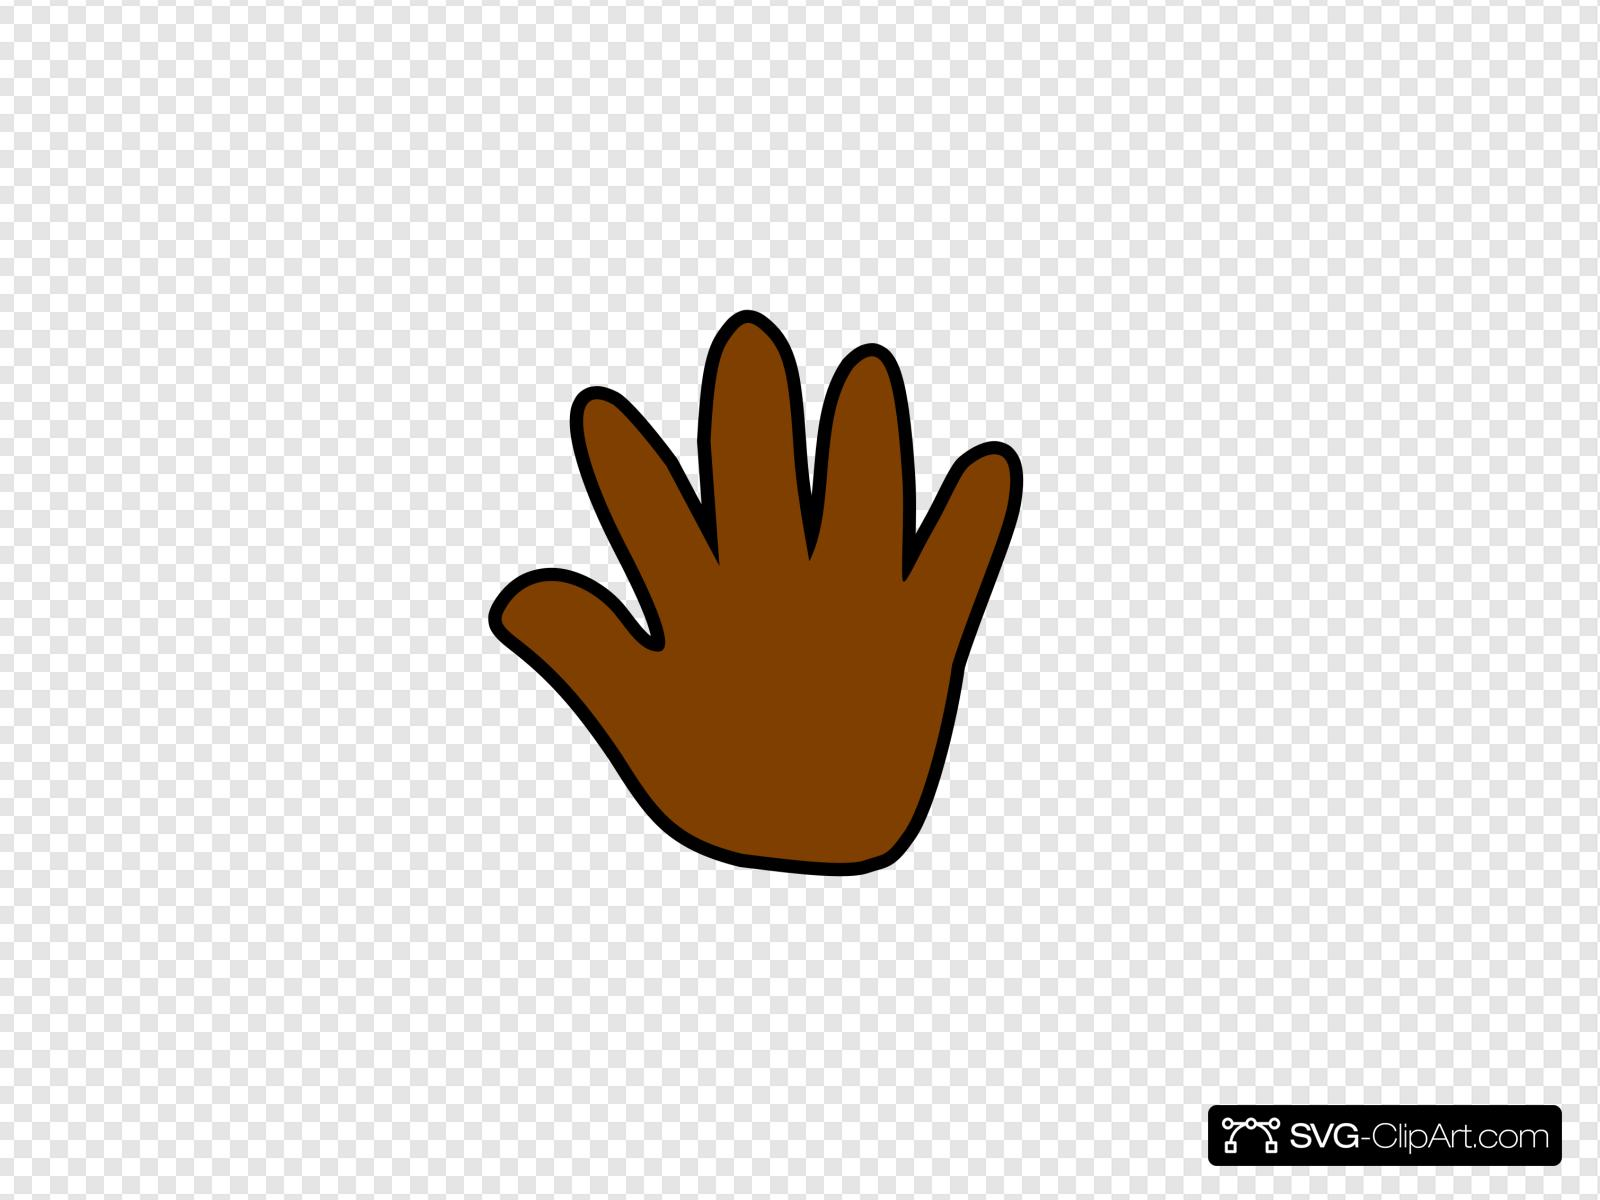 Handprint clipart brown. Dark clip art icon